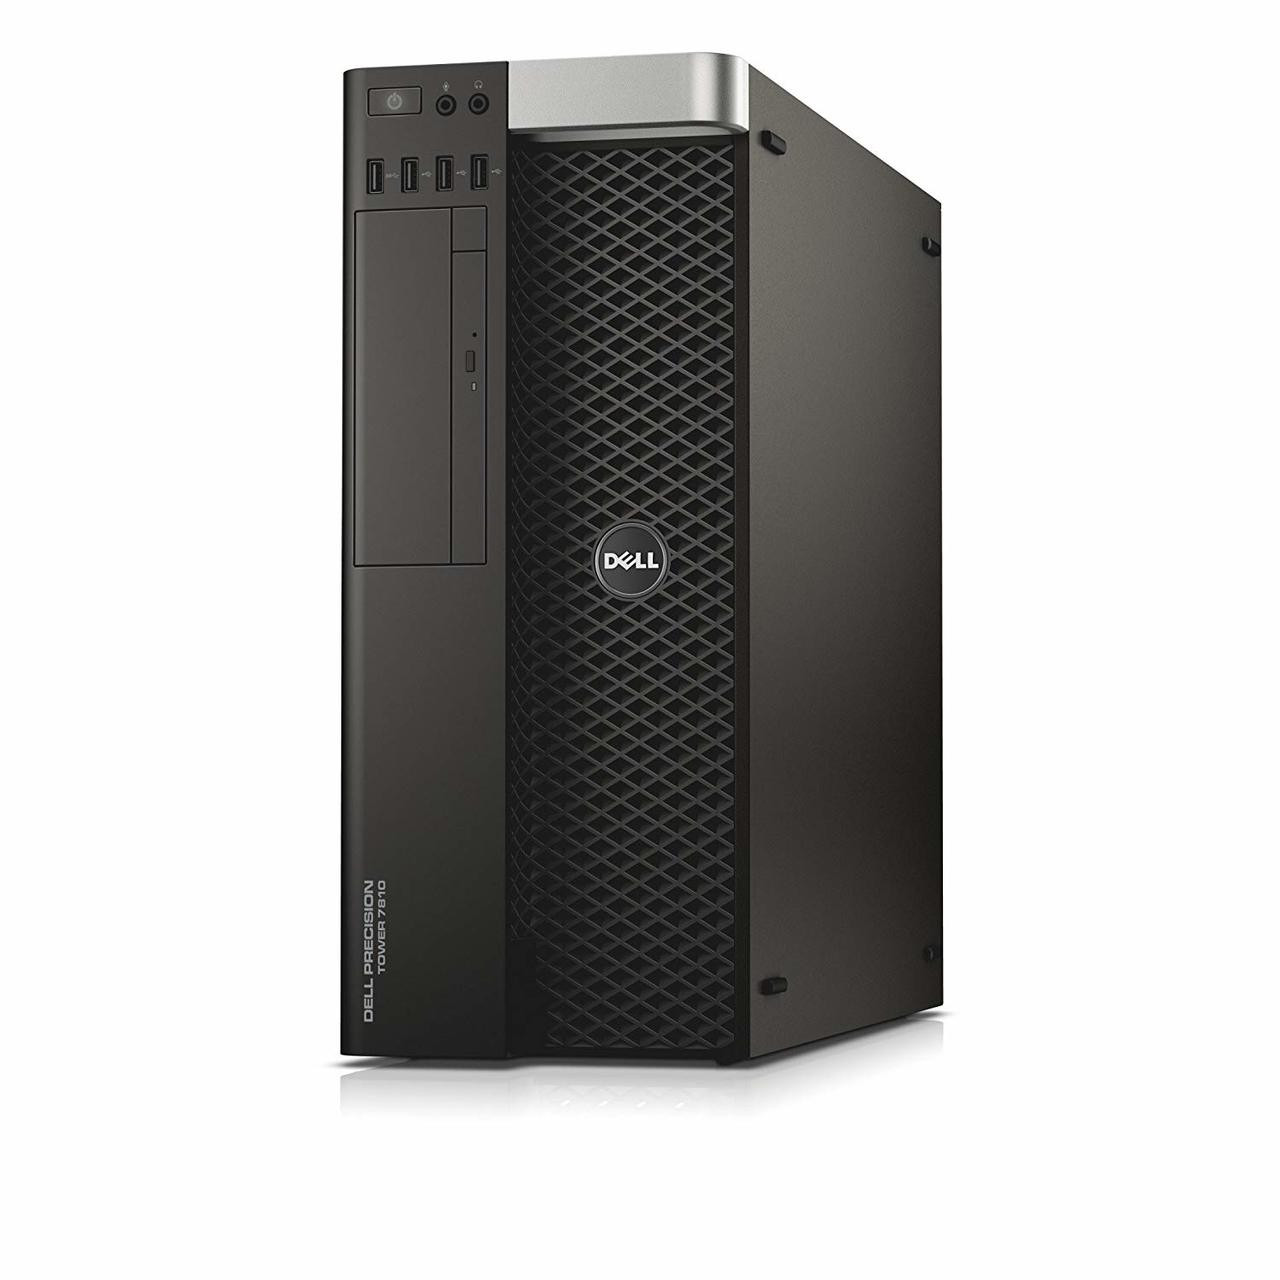 Dell Precision T7810 Tower Six Core Intel Xeon 1.9GHz, 16GB Ram, 500GB HDD, DVD-RW, Windows 10 Pro 64 Desktop Computer